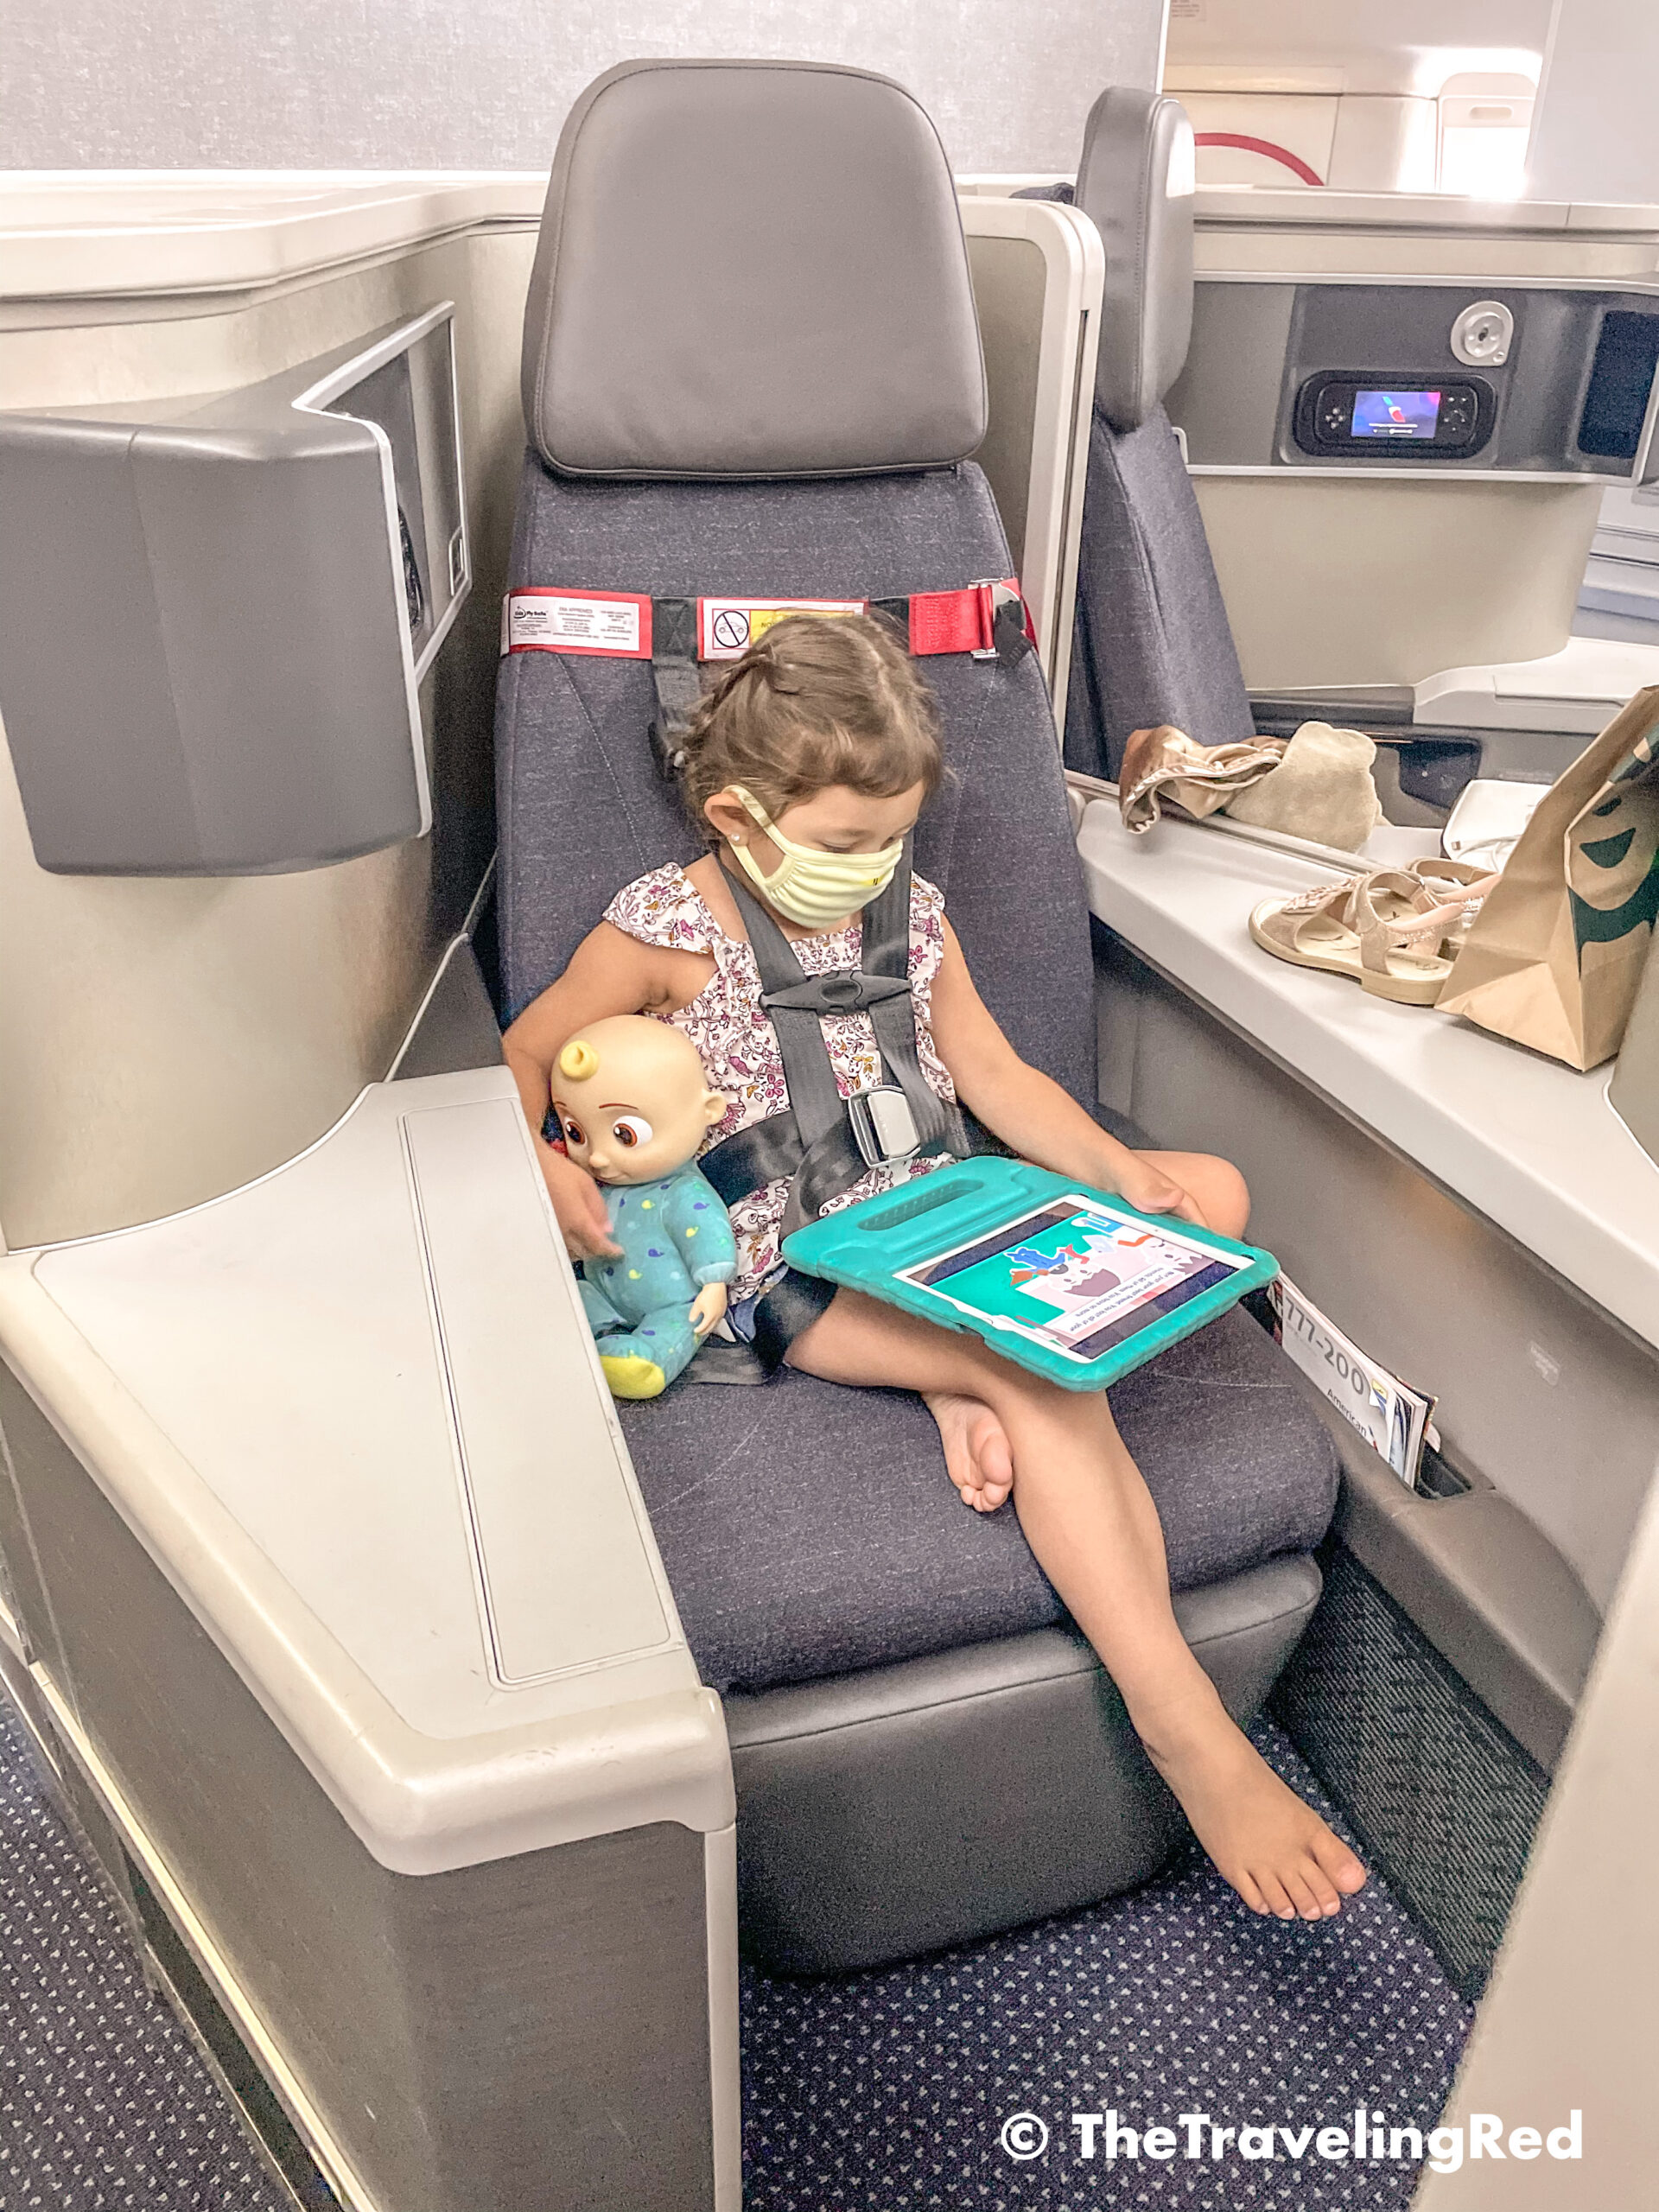 The best alternative for flying with a child and not taking a big car seat. FAA approved airplane harness as an alternative to installing a car seat on an airplane. It it small and fits in your purse. The harness works with the airplane lap belt to restrain similar to a car seat. It does not affect the person sitting behind you because it goes under their tray table.